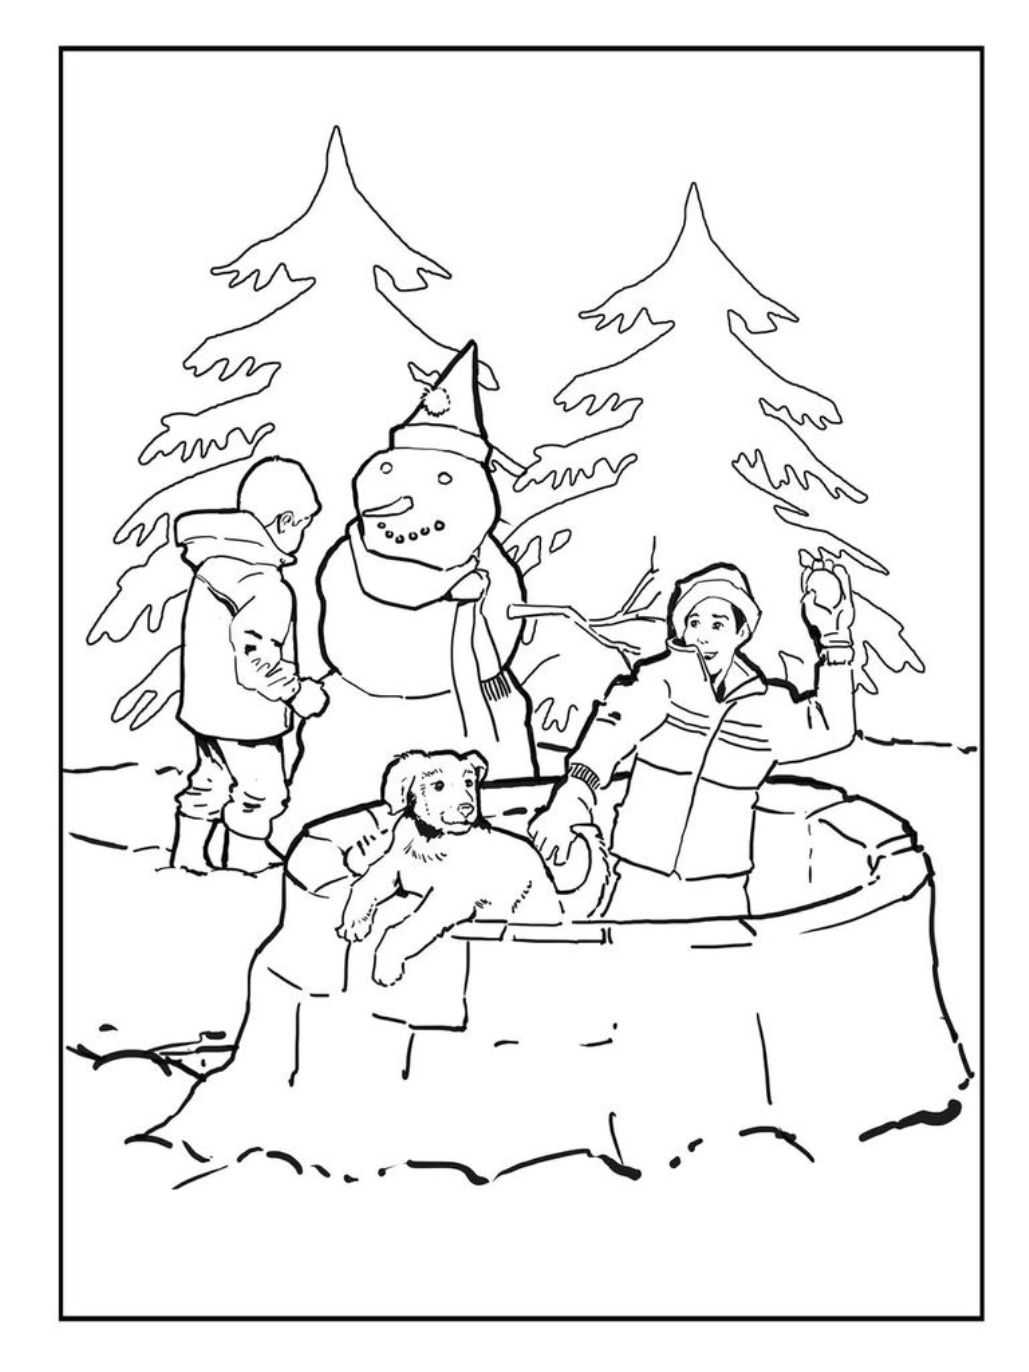 Clip Art Snowy Day Coloring Page snow buddies coloring pages az page